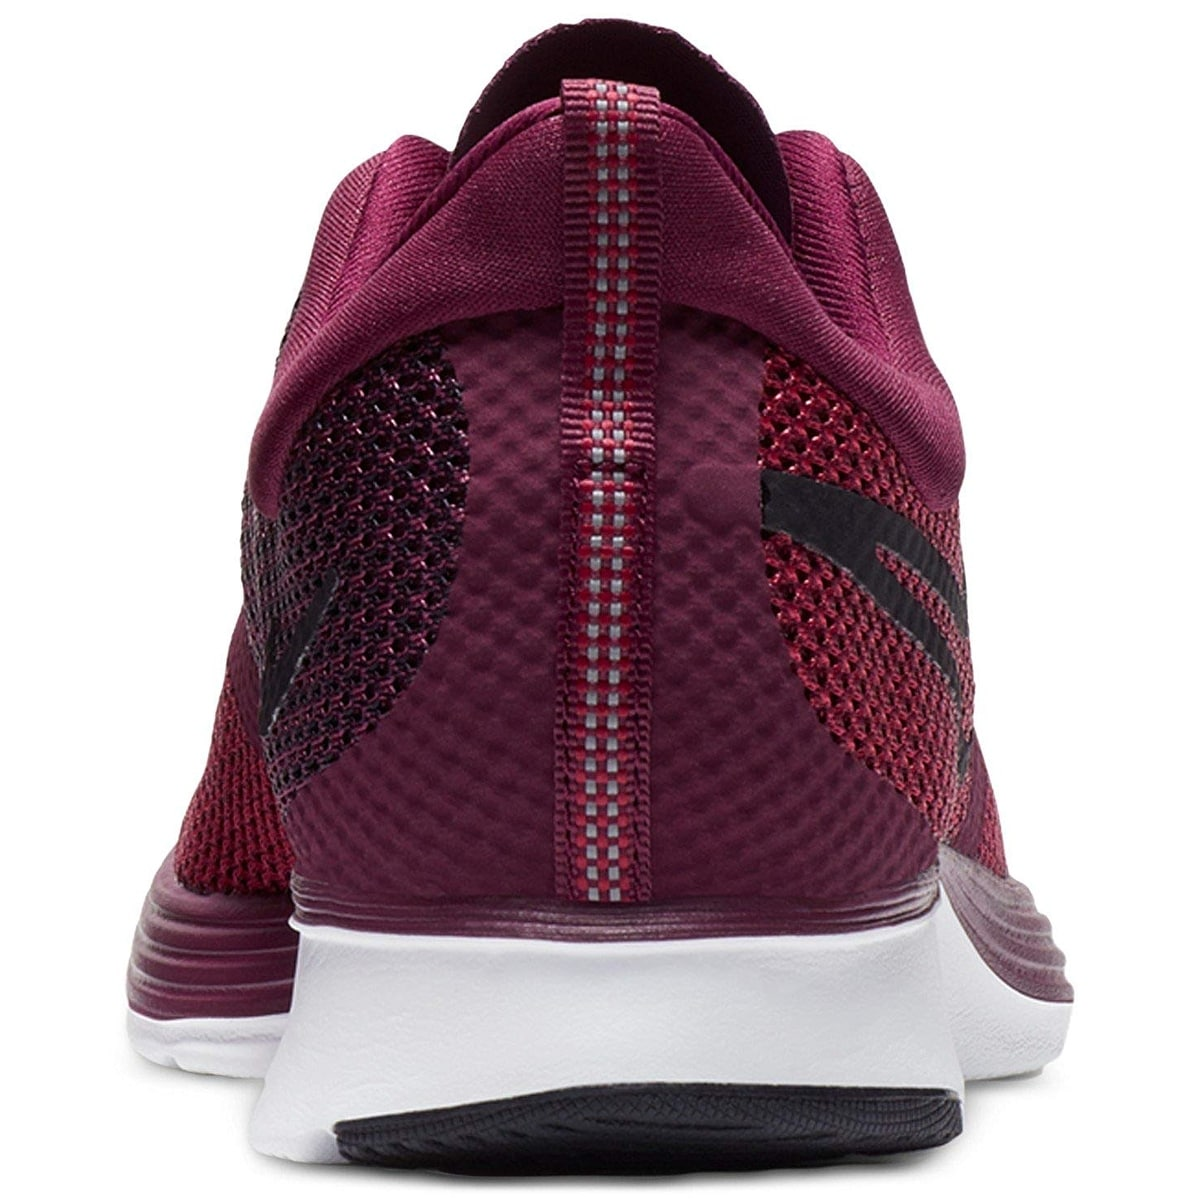 15756d042949 Shop Nike Womens Wmns Zoom Strike Bordeaux Black Rush Maroon Wht Size 9 -  Free Shipping Today - Overstock - 24305424